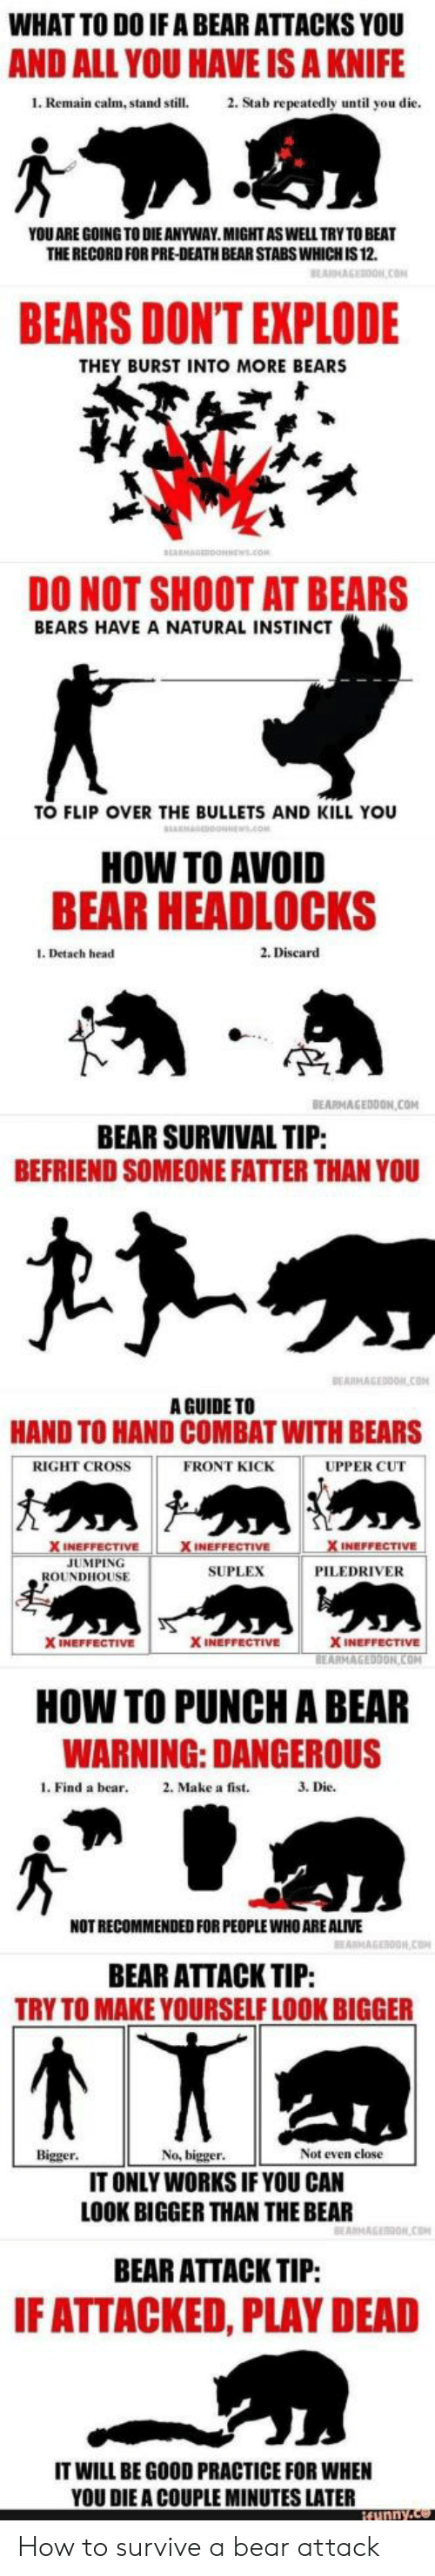 Instincts: WHAT TO DO IF A BEAR ATTACKS YOU  AND ALL YOU HAVE IS A KNIFE  1. Remain calm, stand still.2. Stab repeatedly until you die  YOU ARE GOING TO DIE ANYWAY.MIGHTASWELL TRY TO BEAT  THE RECORD FOR PRE-DEATH BEAR STABS WHICH IS 12.  BEARS DONT EXPLODE  THEY BURST INTO MORE BEARS  DO NOT SHOOT AT BEARS  BEARS HAVE A NATURAL INSTINCT  TO FLIP OVER THE BULLETS AND KILL YOU  HOW TO AVOID  BEAR HEADLOCKS  1. Detach head  2. Discard  TP  BEARMAGEDDON COM  BEAR SURVIVAL TIP  BEFRIEND SOMEONE FATTER THAN YOU  A GUIDE TO  HAND TO HAND COMBAT WITH BEARS  RIGHT CROSS  FRONT KICK  UPPER CUT  INEFFECTIVE  JUMPING  SUPLEX  PILEDRIVER  ROUNDHOUSE  X INEFFECTIVE  X INEFFECTIVE  ON  HOW TO PUNCH A BEAR  WARNING: DANGEROUS  l. Find a bear 2. Make a fist.  3. Die.  NOT RECOMMENDED FOR PEOPLE WHO ARE ALIVE  BEAR ATTACK TIP:  TRY TO MAKE YOURSELF LOOK BIGGER  Bigger  No, bigger  Not even close  IT ONLY WORKS IF YOU CAN  LOOK BIGGER THAN THE BEAR  BEAR ATTACK TIP:  F ATTACKED, PLAY DEAD  IT WILL BE GOOD PRACTICE FOR WHEN  YOU DIE A COUPLE MINUTES LATER How to survive a bear attack